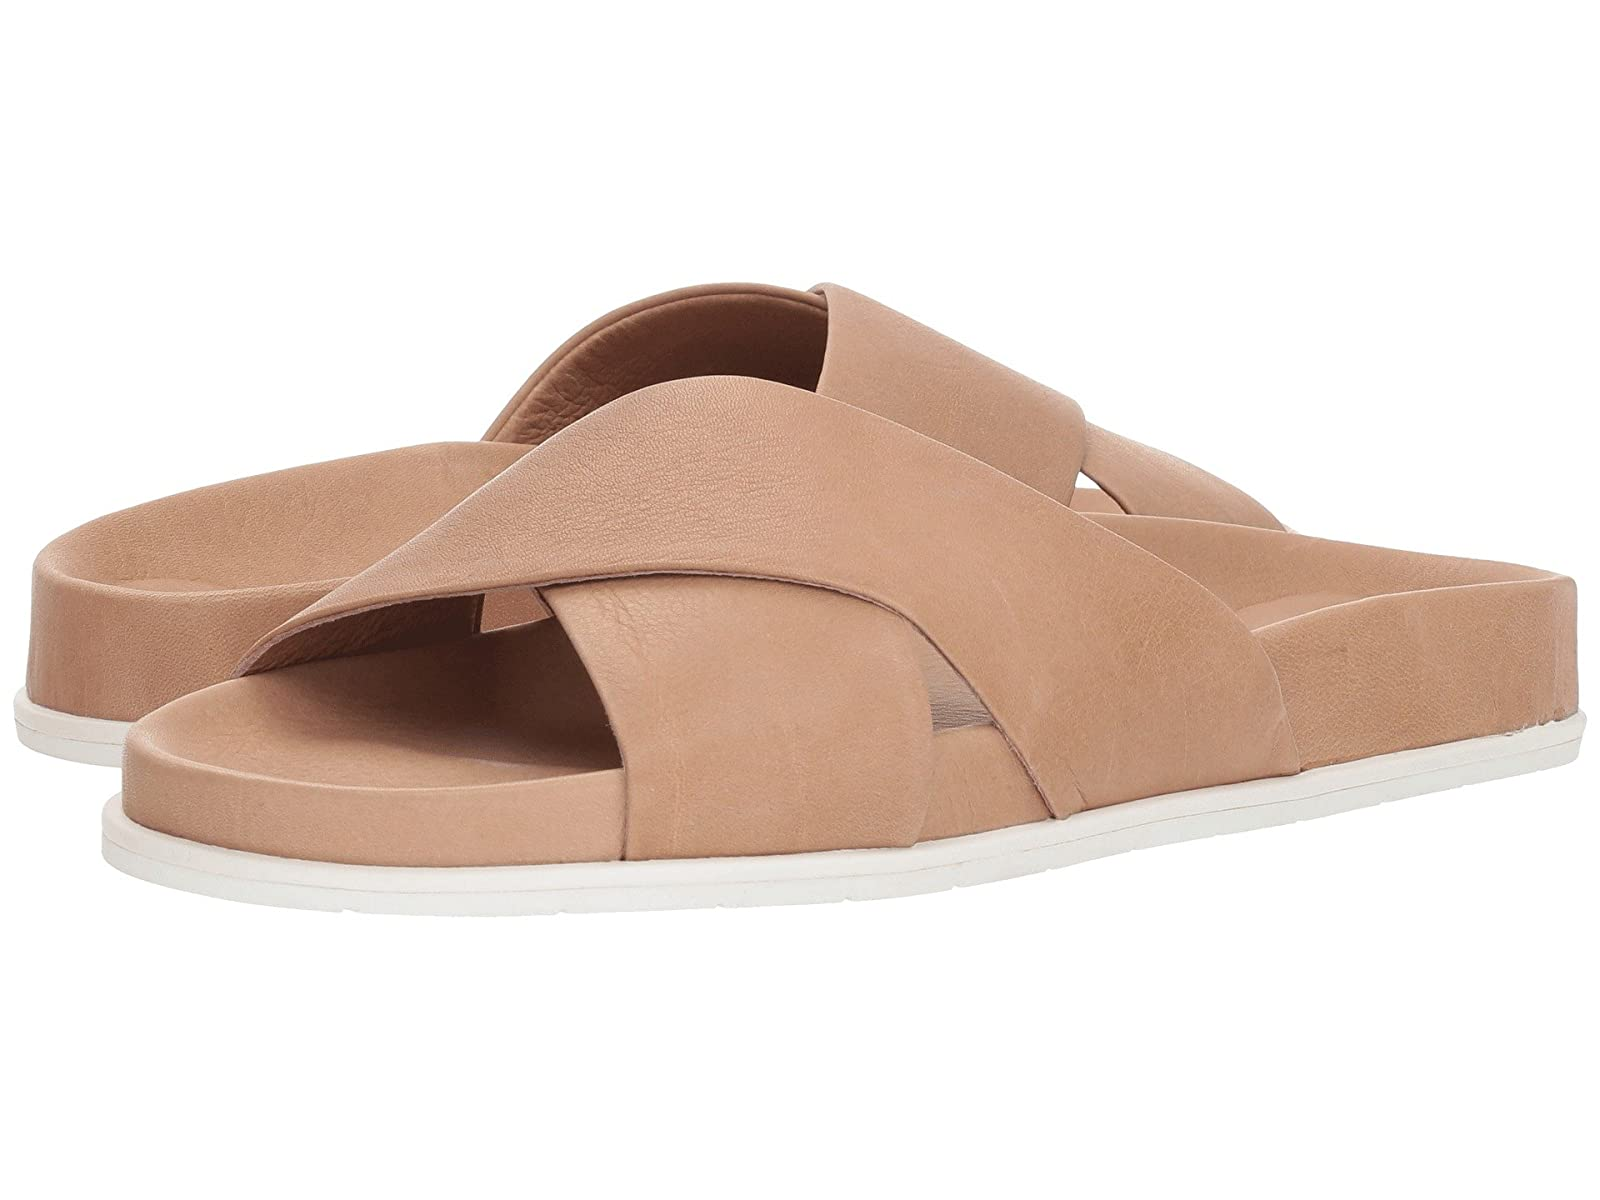 Gentle Souls by Kenneth Cole IonelaAtmospheric grades have affordable shoes